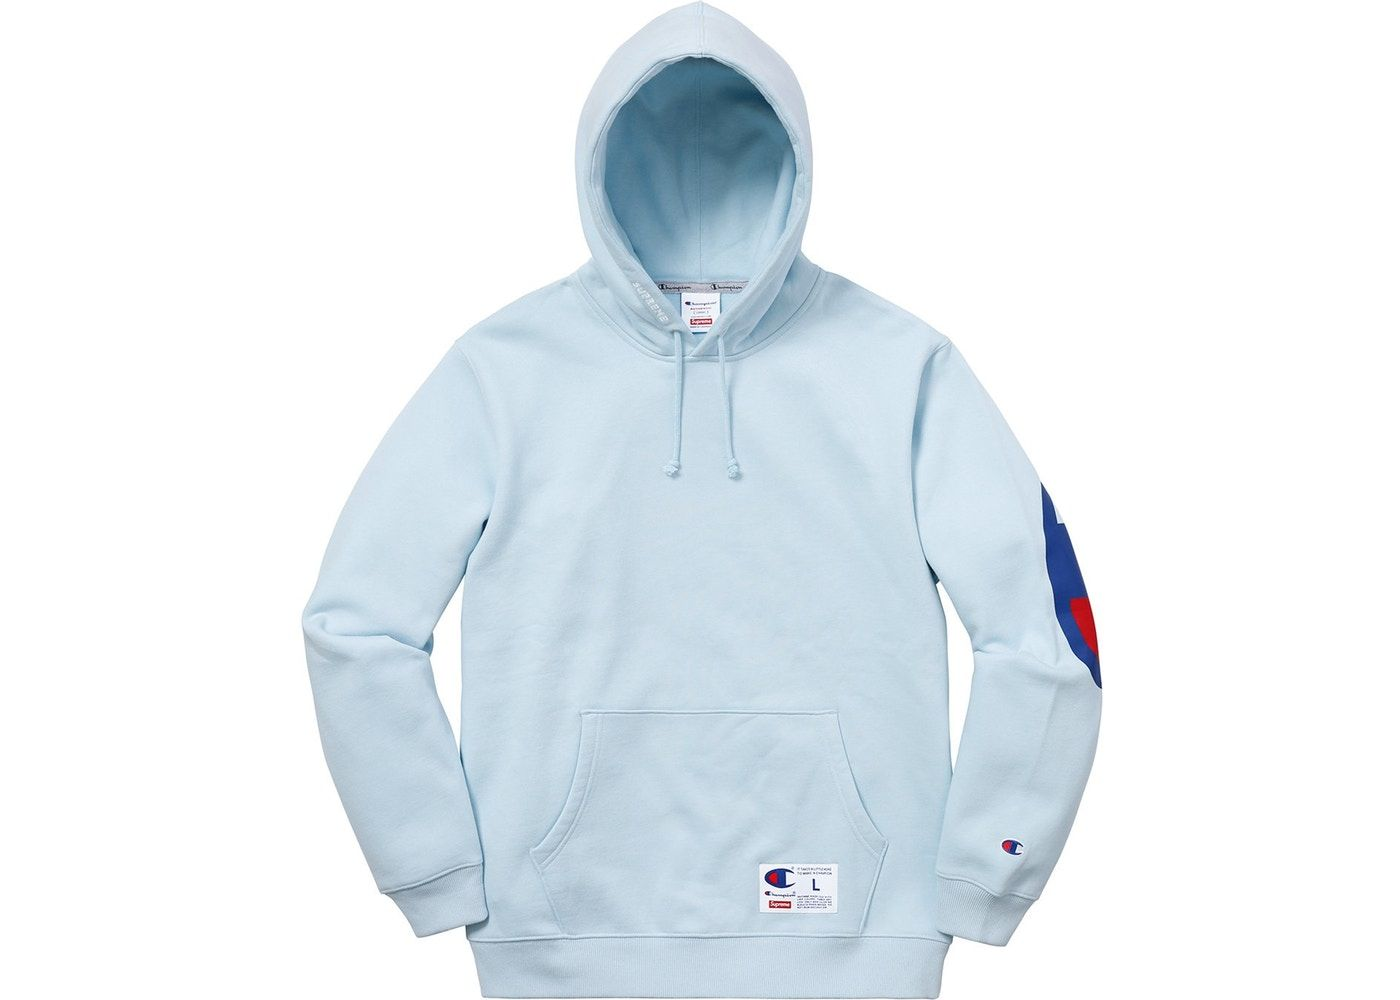 c9334dd2 Check out the Supreme Champion Hooded Sweatshirt (SS18) Light Blue  available on StockX